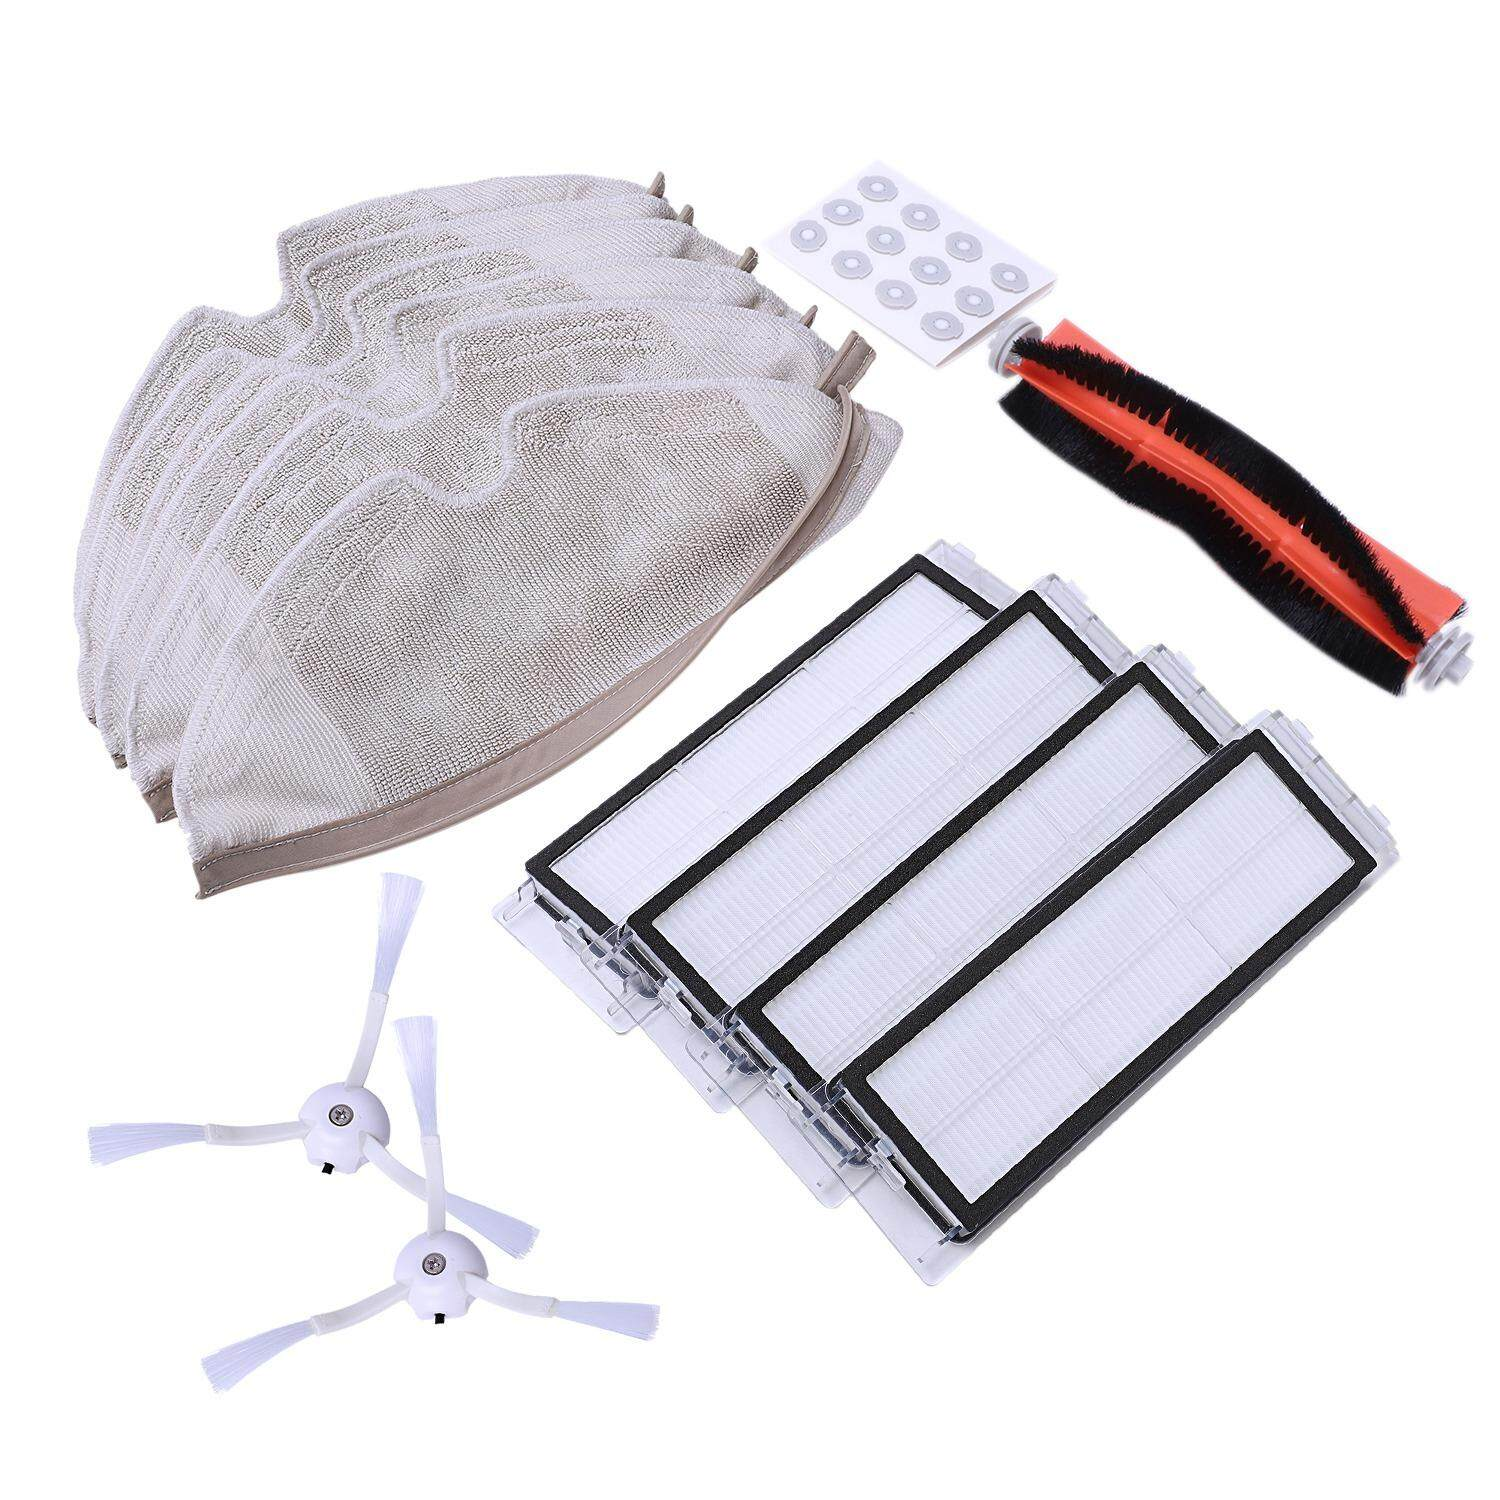 Accessory Kit For Ecovacs Deebot N79s & N79 Robotic Vacuum Cleaner 2pcs Side Brush Replacement Parts Home Appliances